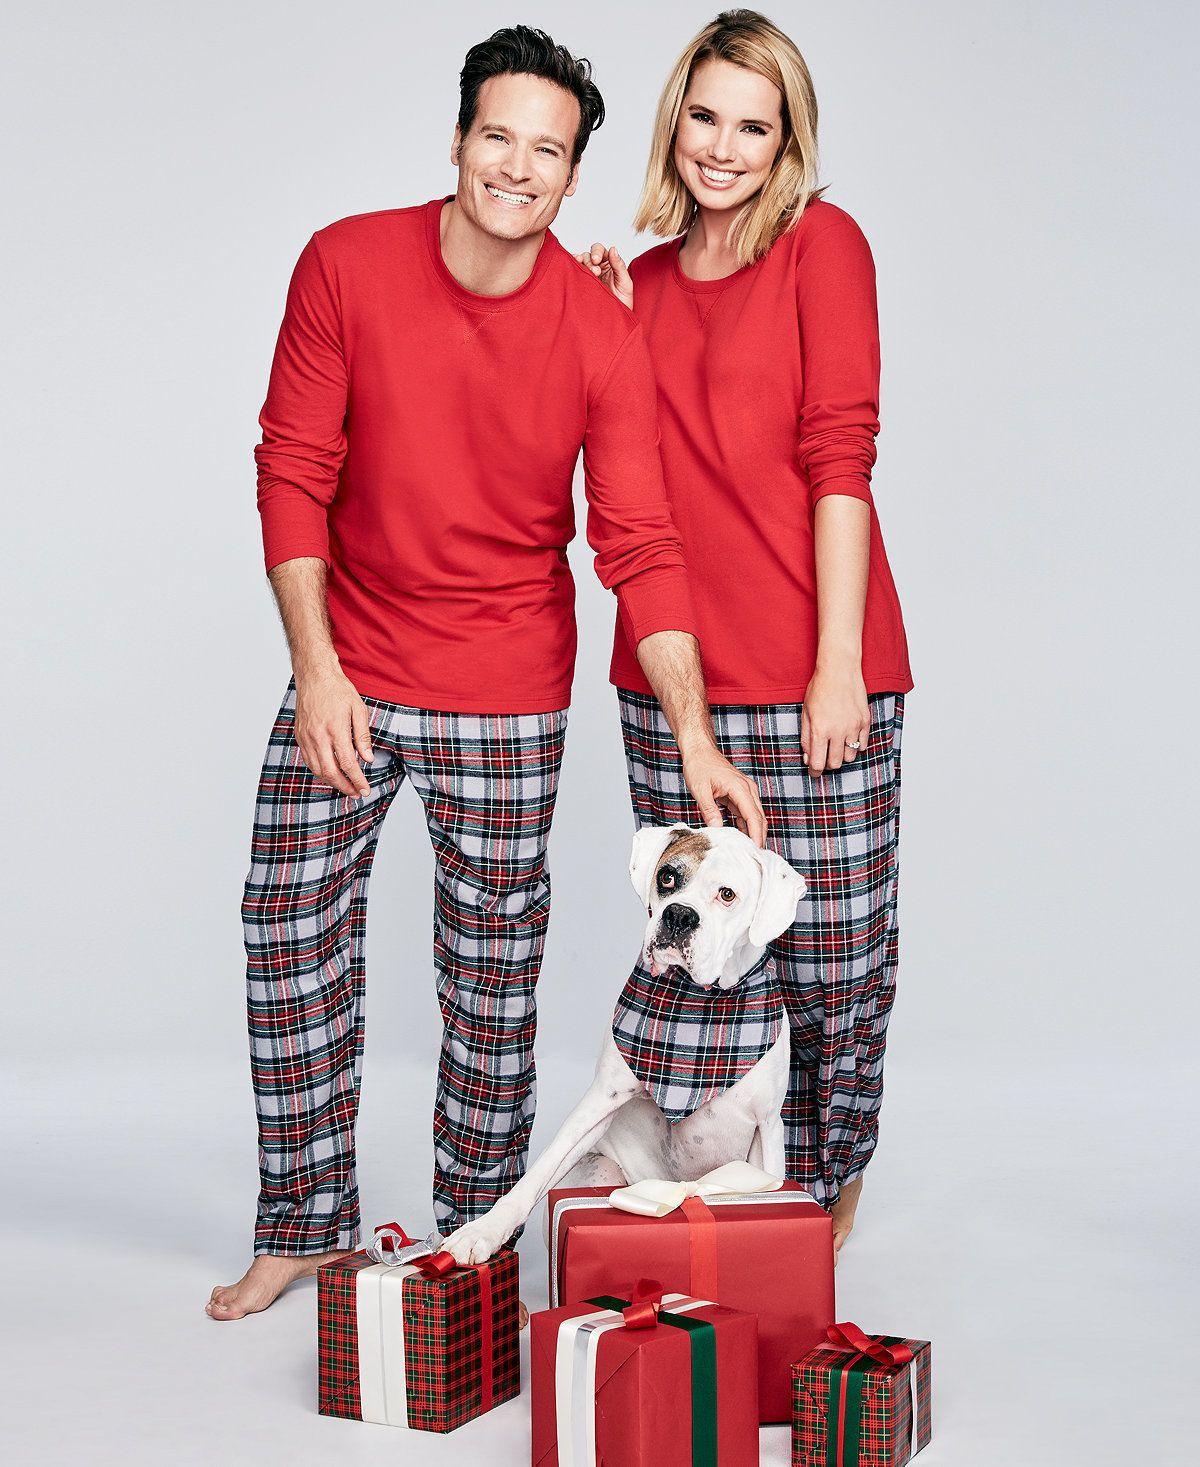 Matching Family Christmas Pajamas That Are As Adorable As They Jpg 960x1173 Target Footie Pajamas For